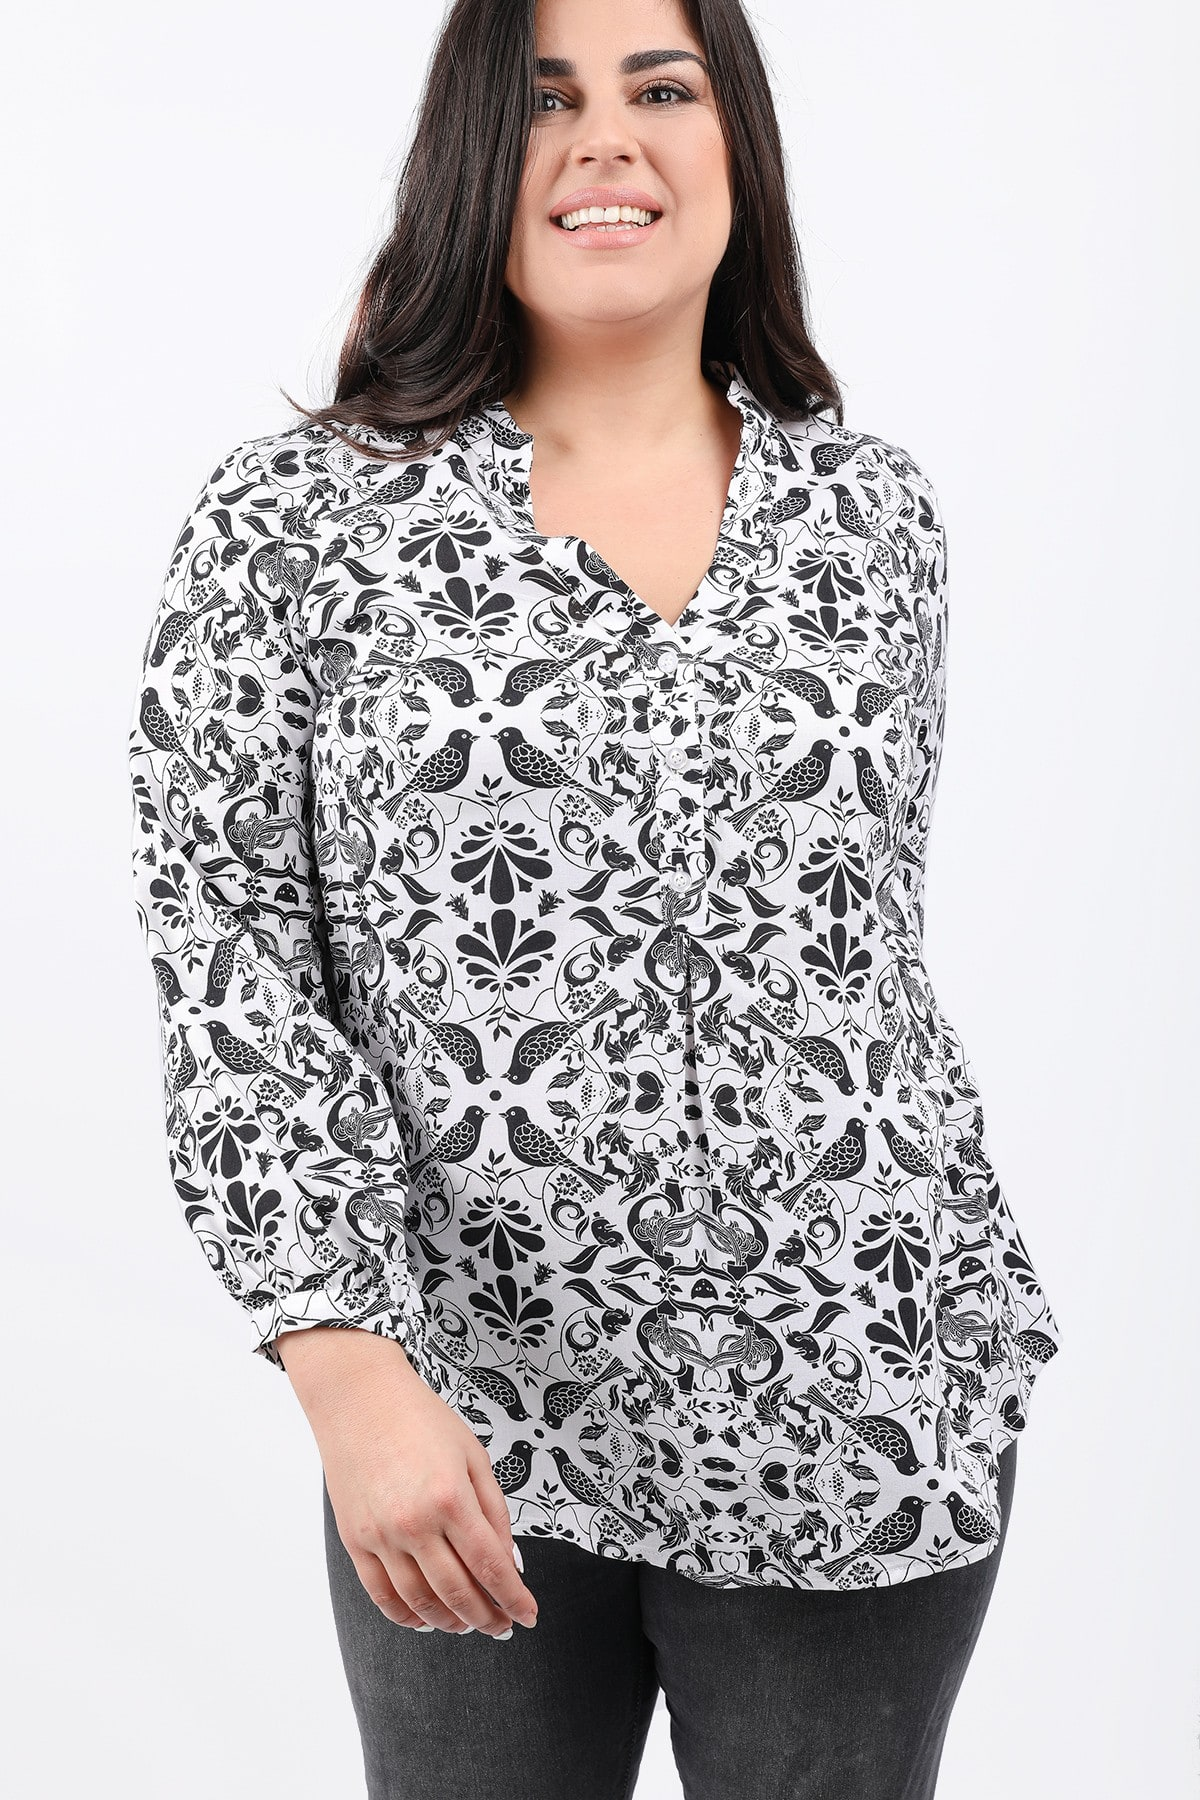 Printed shirtblouse with buttons on the V